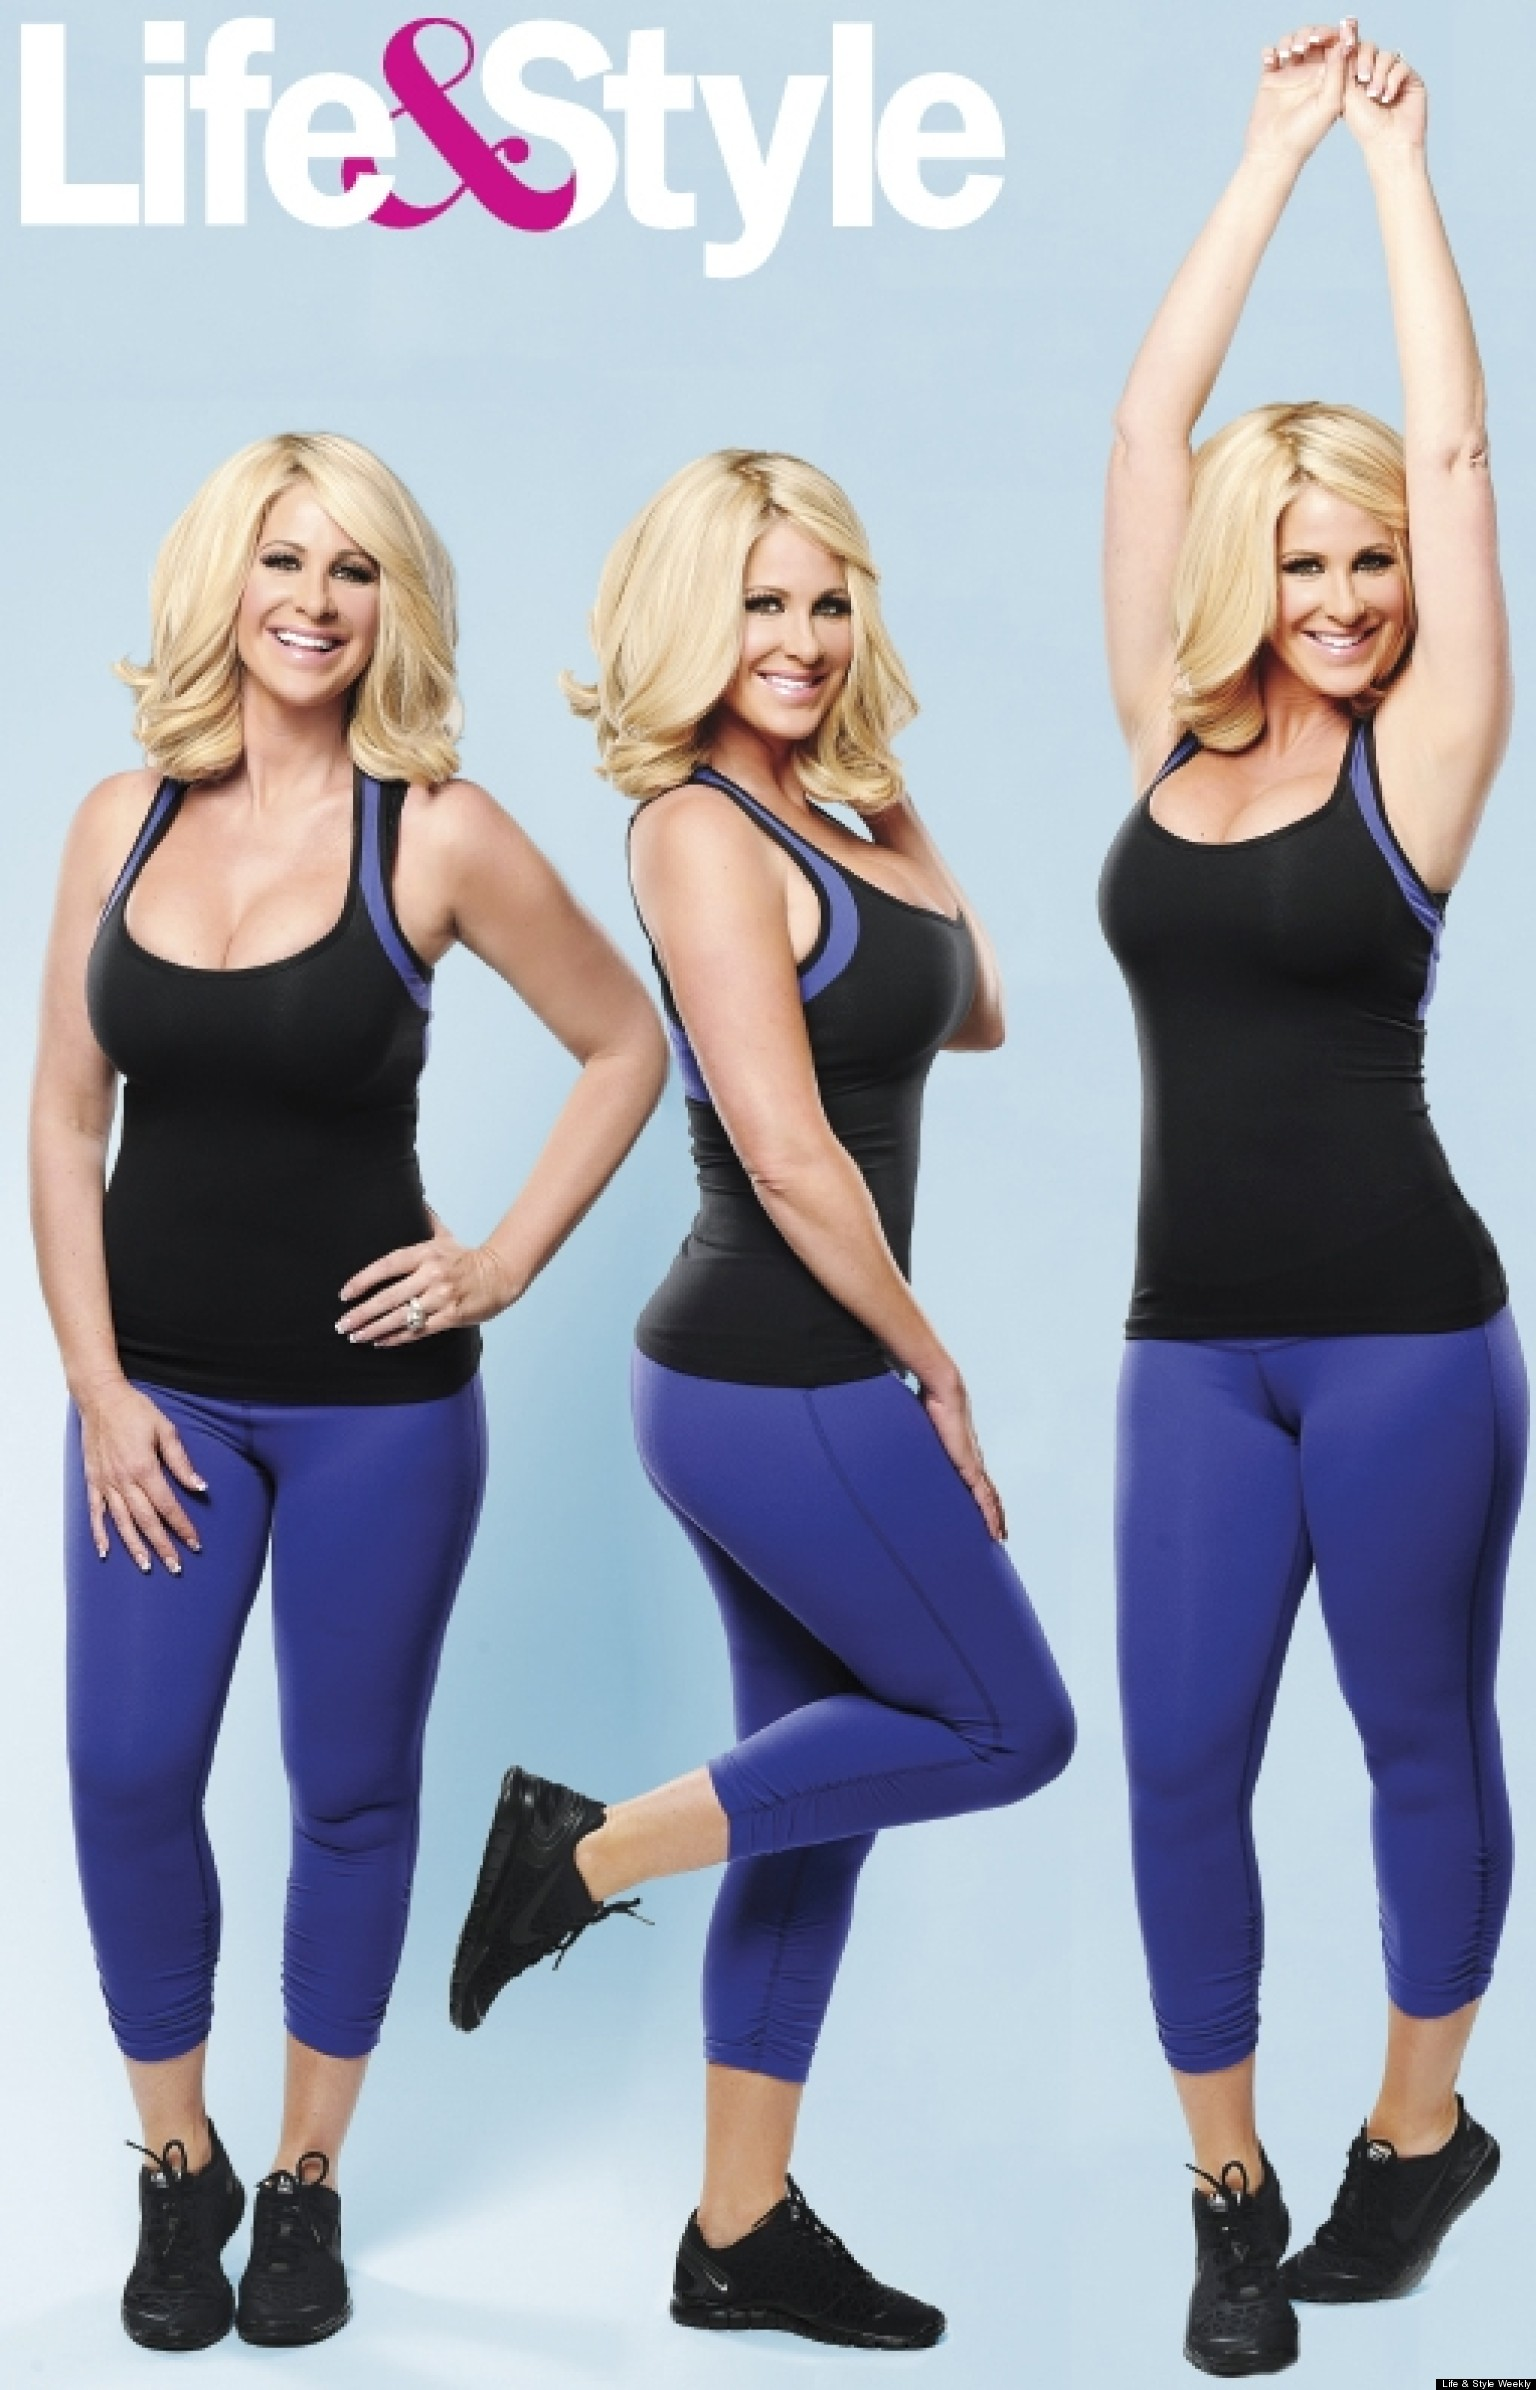 Kim Zolciak S Weight Loss Real Housewives Star Shows Off Post Baby Body Photos Huffpost